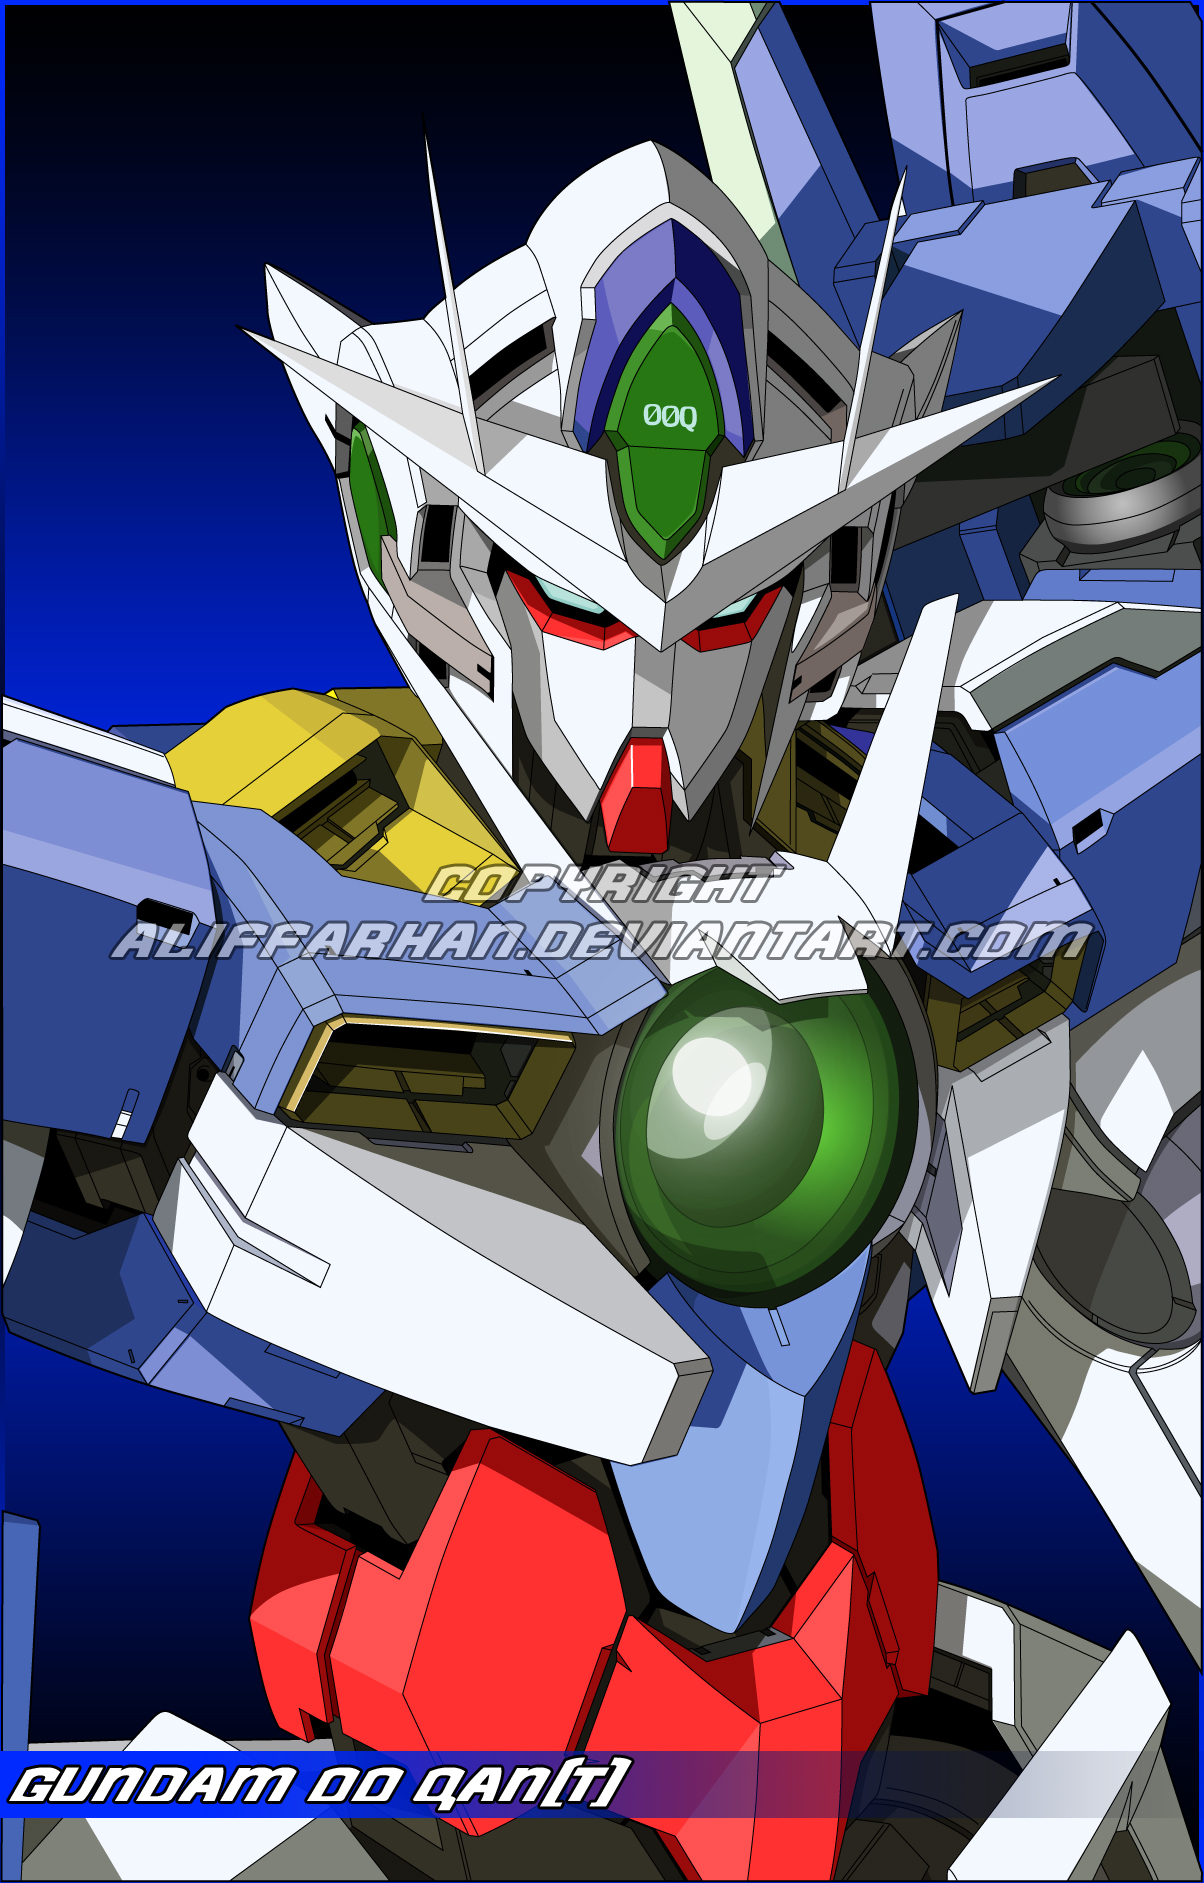 Gundam 00 fan art